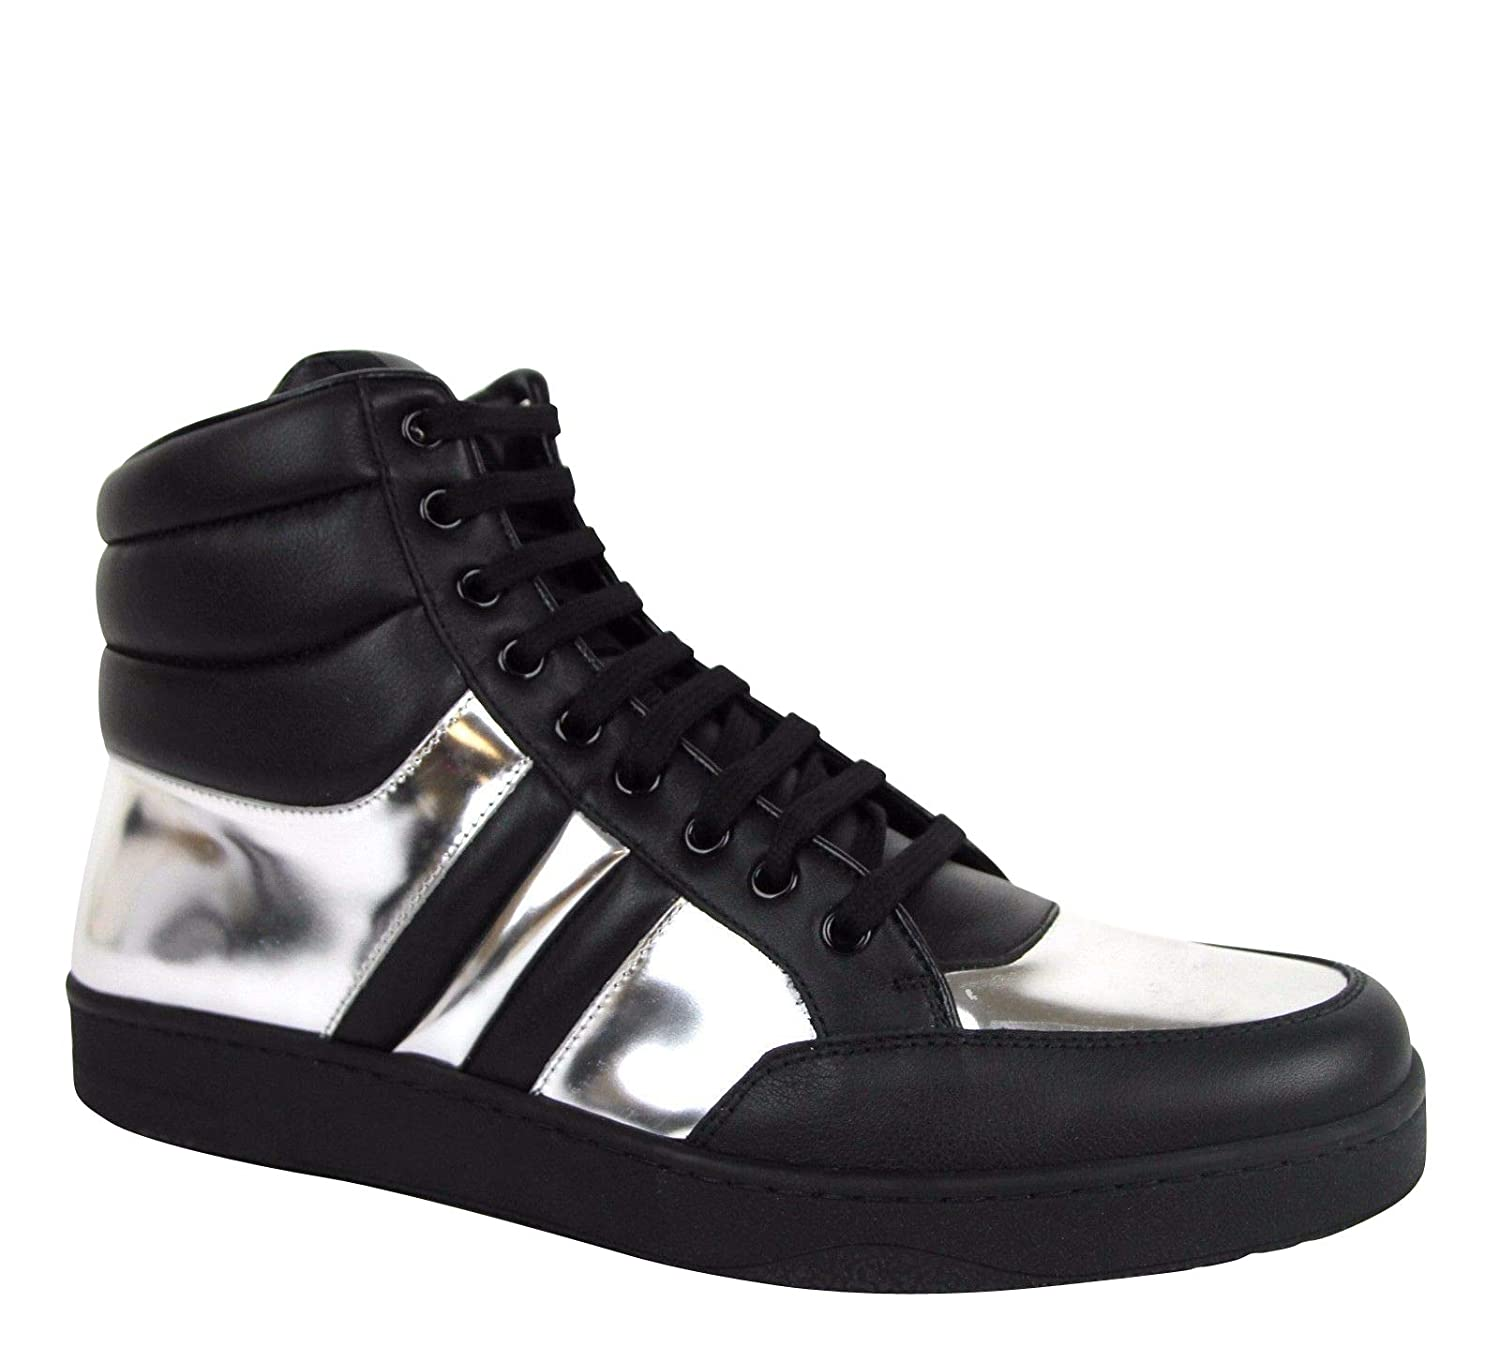 43d380323e9 Amazon.com  Gucci High top Contrast Padded Leather Sneaker 368494  Shoes